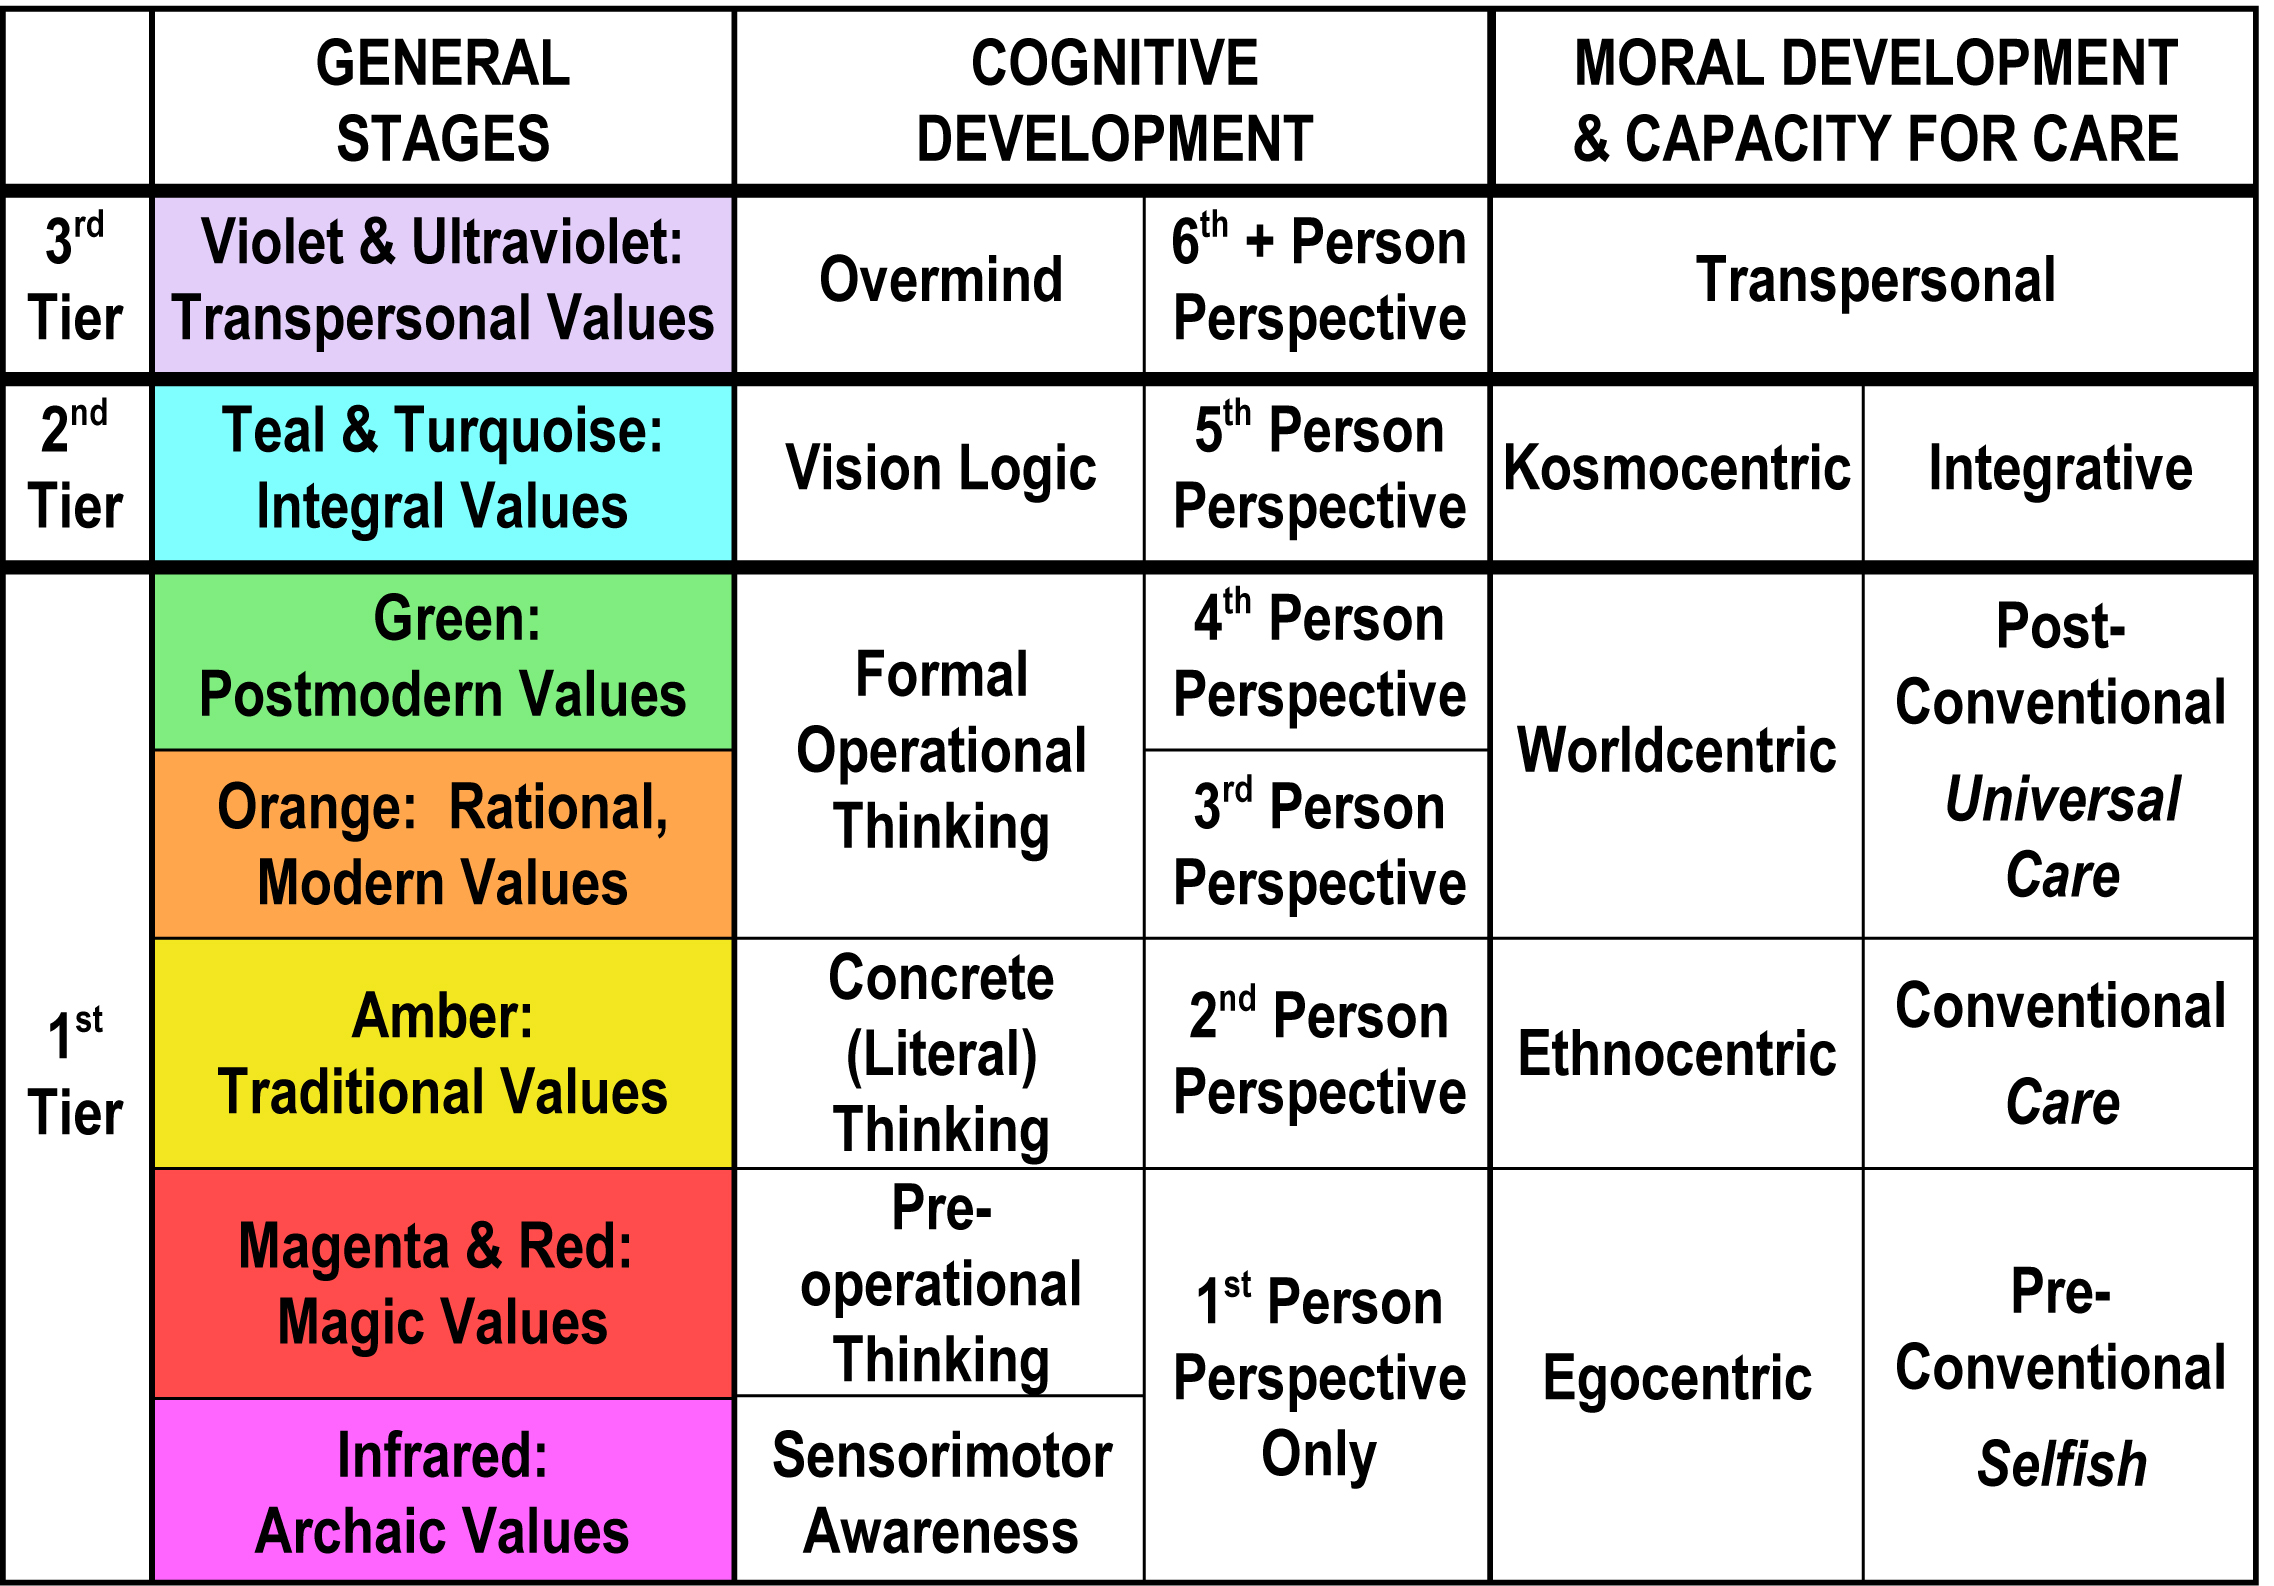 developmental stages matrix psy 375